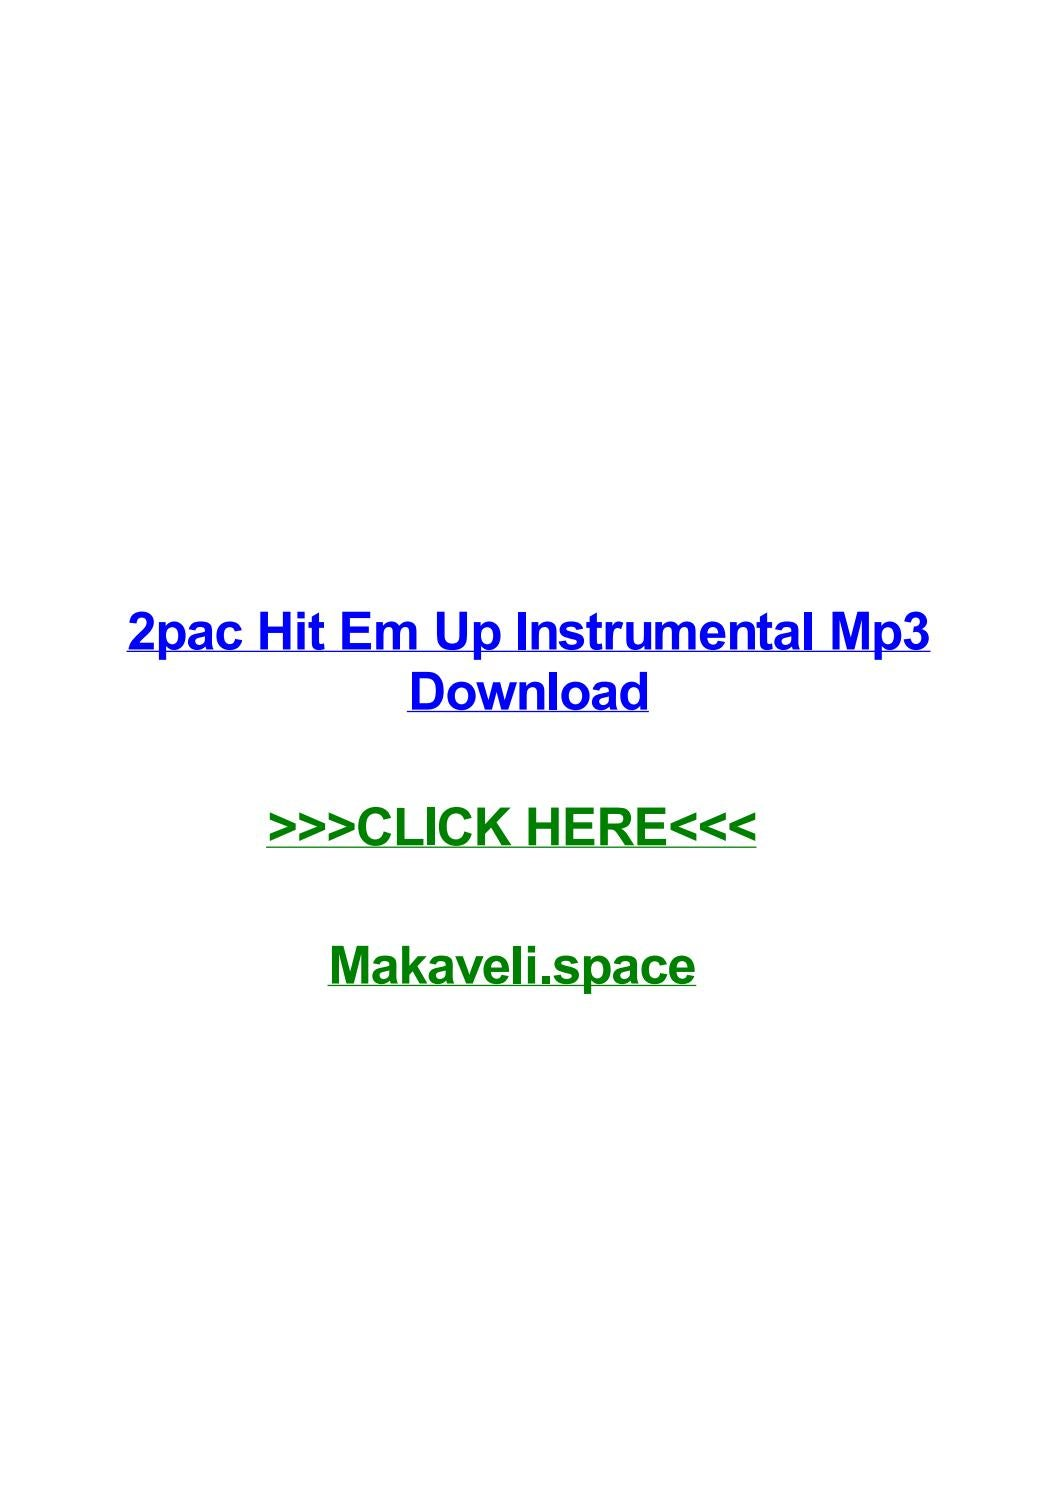 2pac hit em up instrumental mp3 download by shelbyehzk - issuu